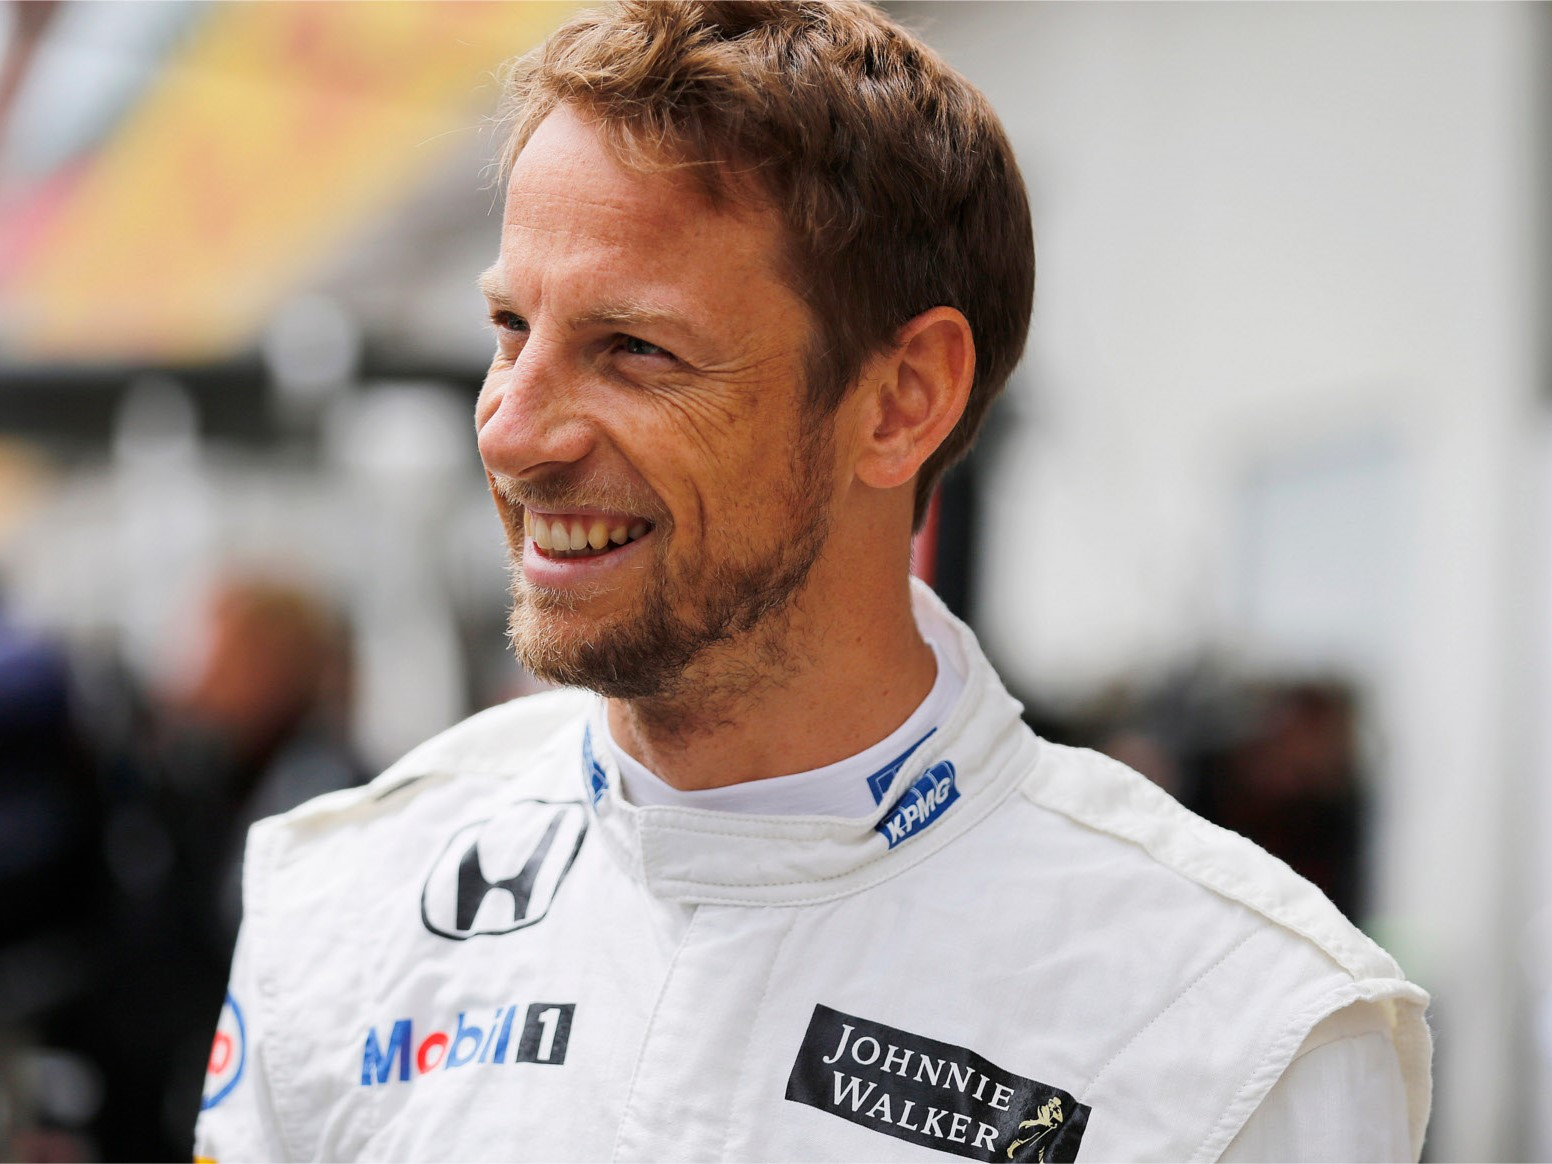 http://superf1.be/spip/IMG/jpg/jenson-button-2015-2-sc.jpg